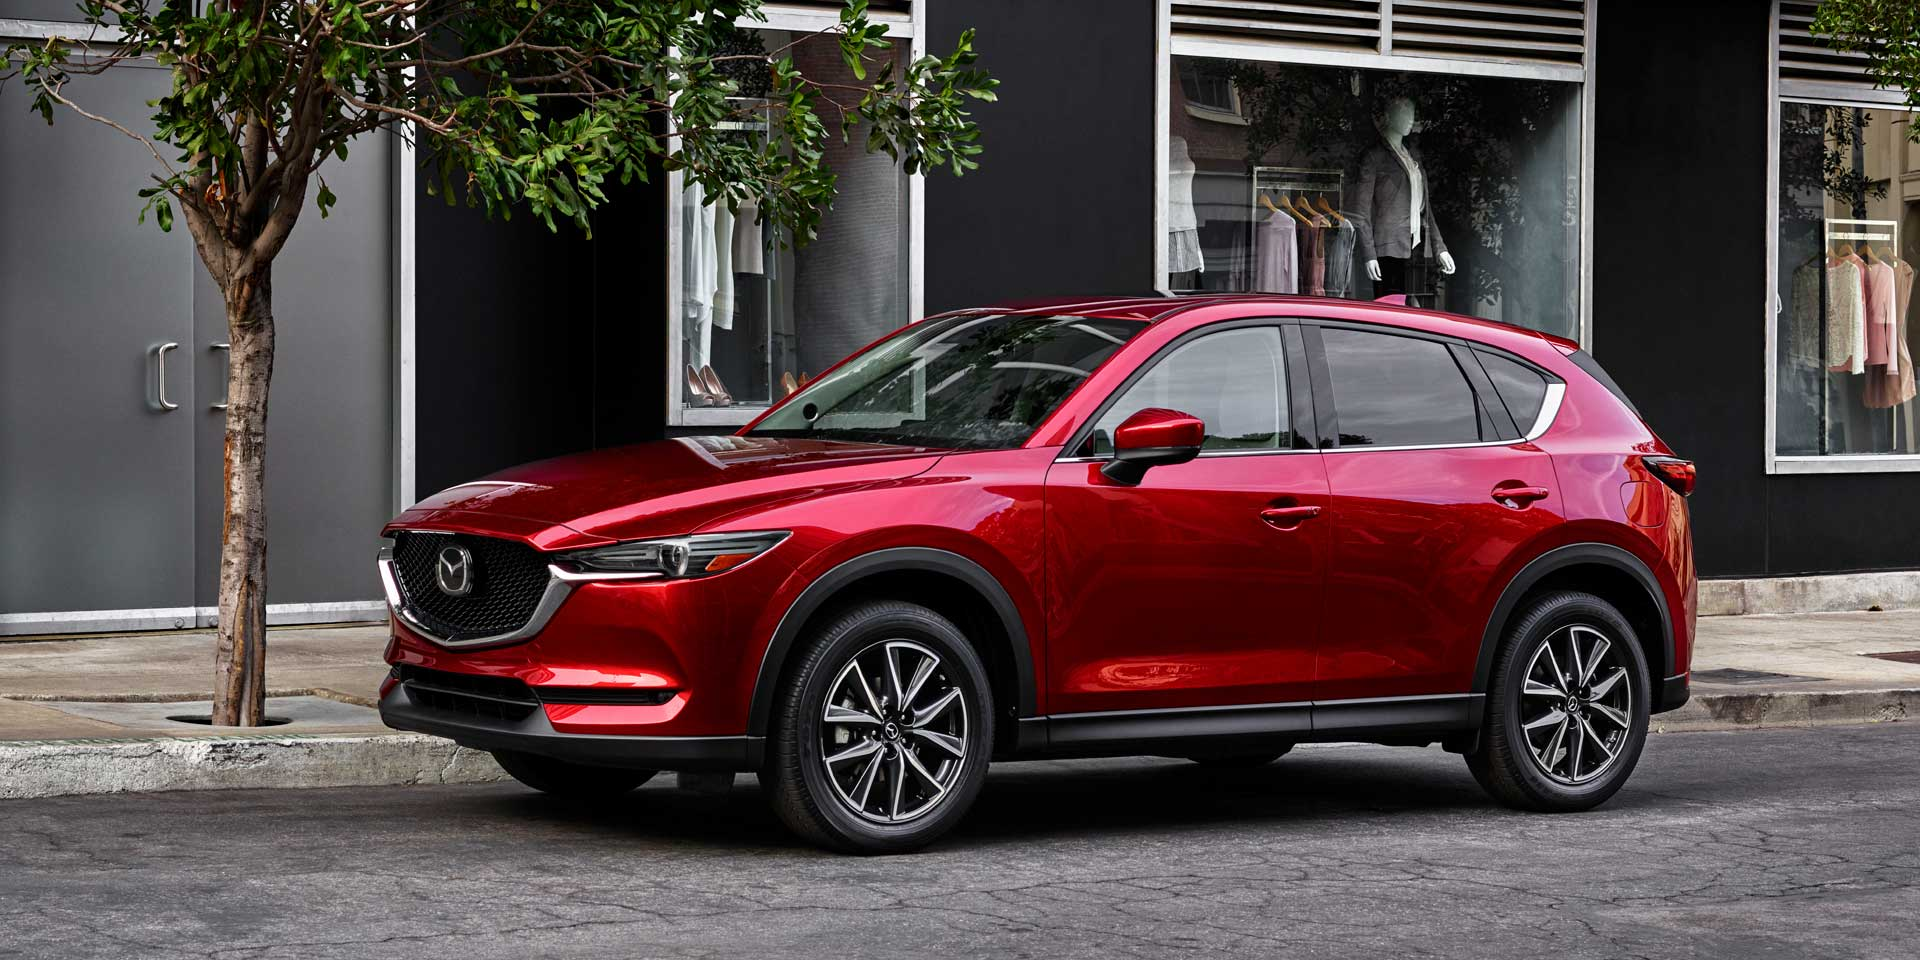 2017 mazda cx 5 vehicles on display chicago auto show. Black Bedroom Furniture Sets. Home Design Ideas